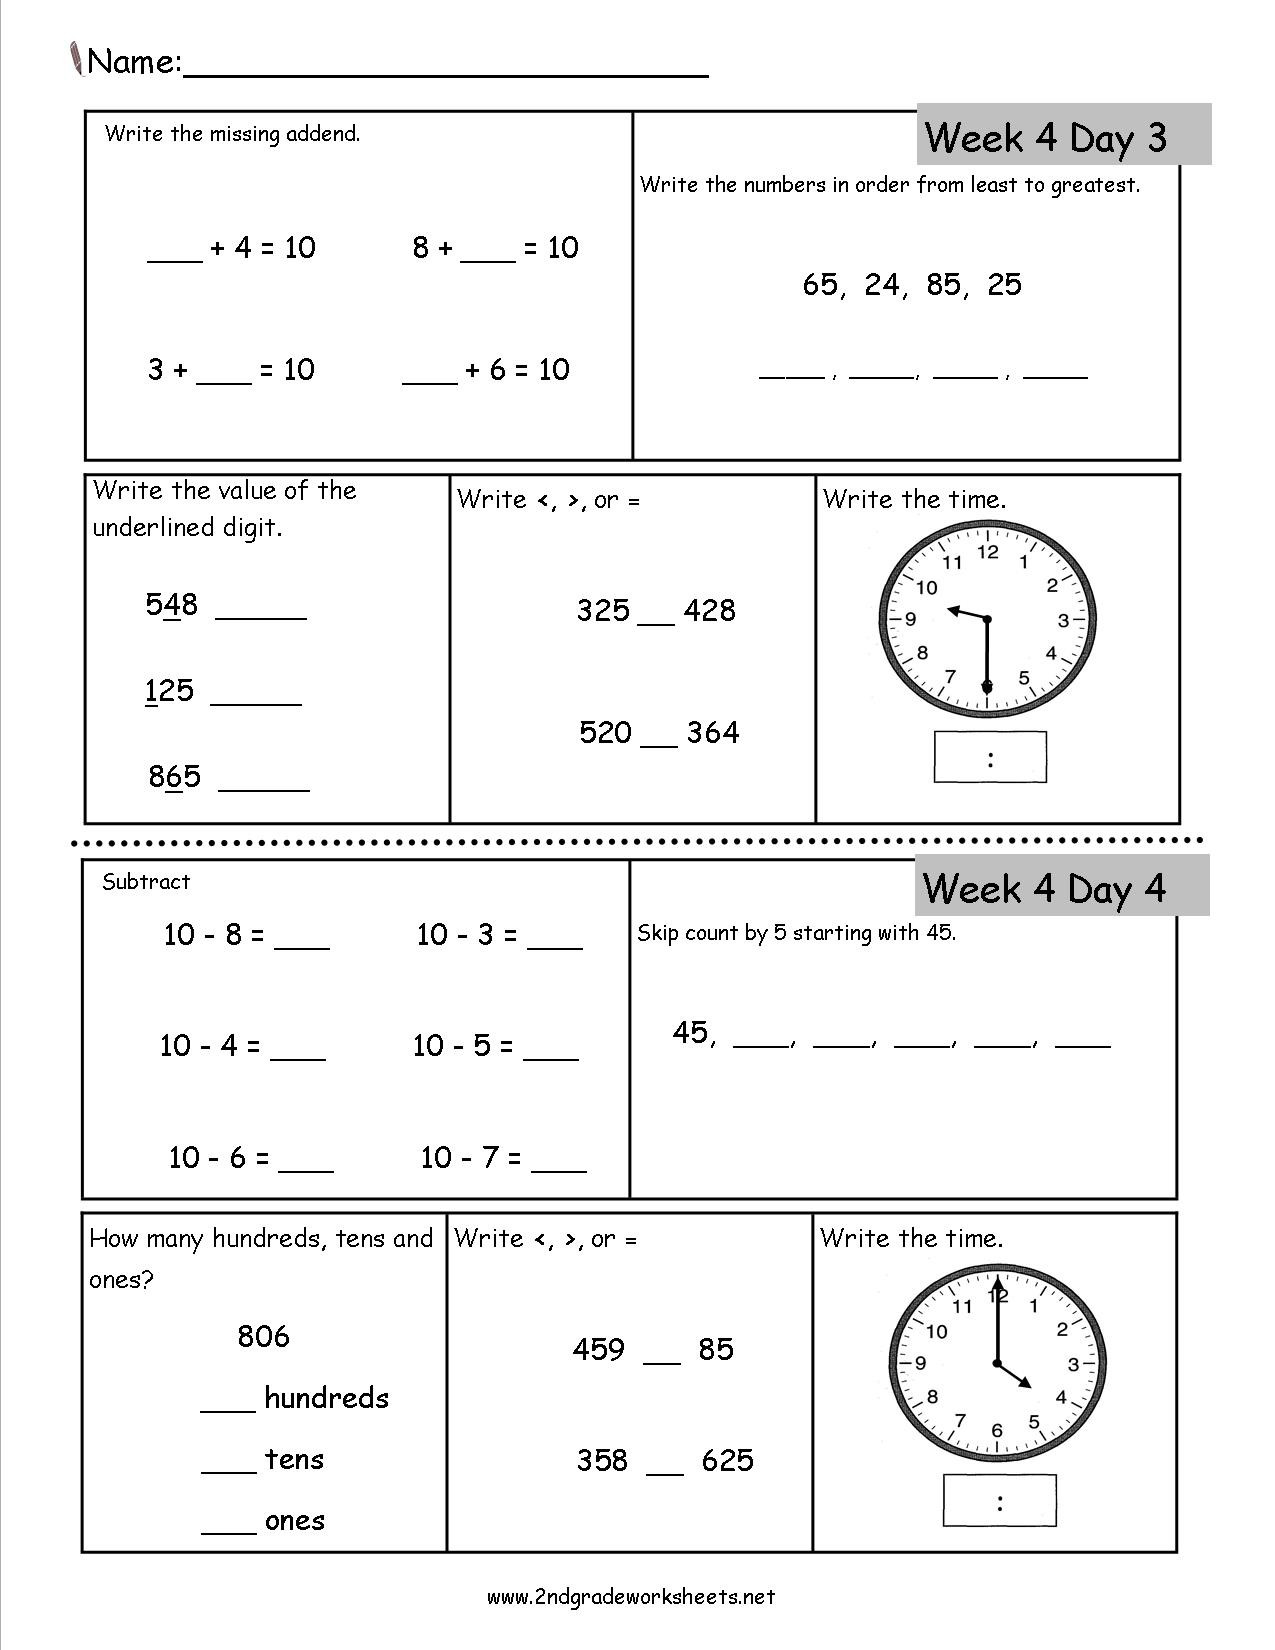 Plot Worksheets 2nd Grade Free 2nd Grade Daily Math Worksheets Mon Core Dailymath